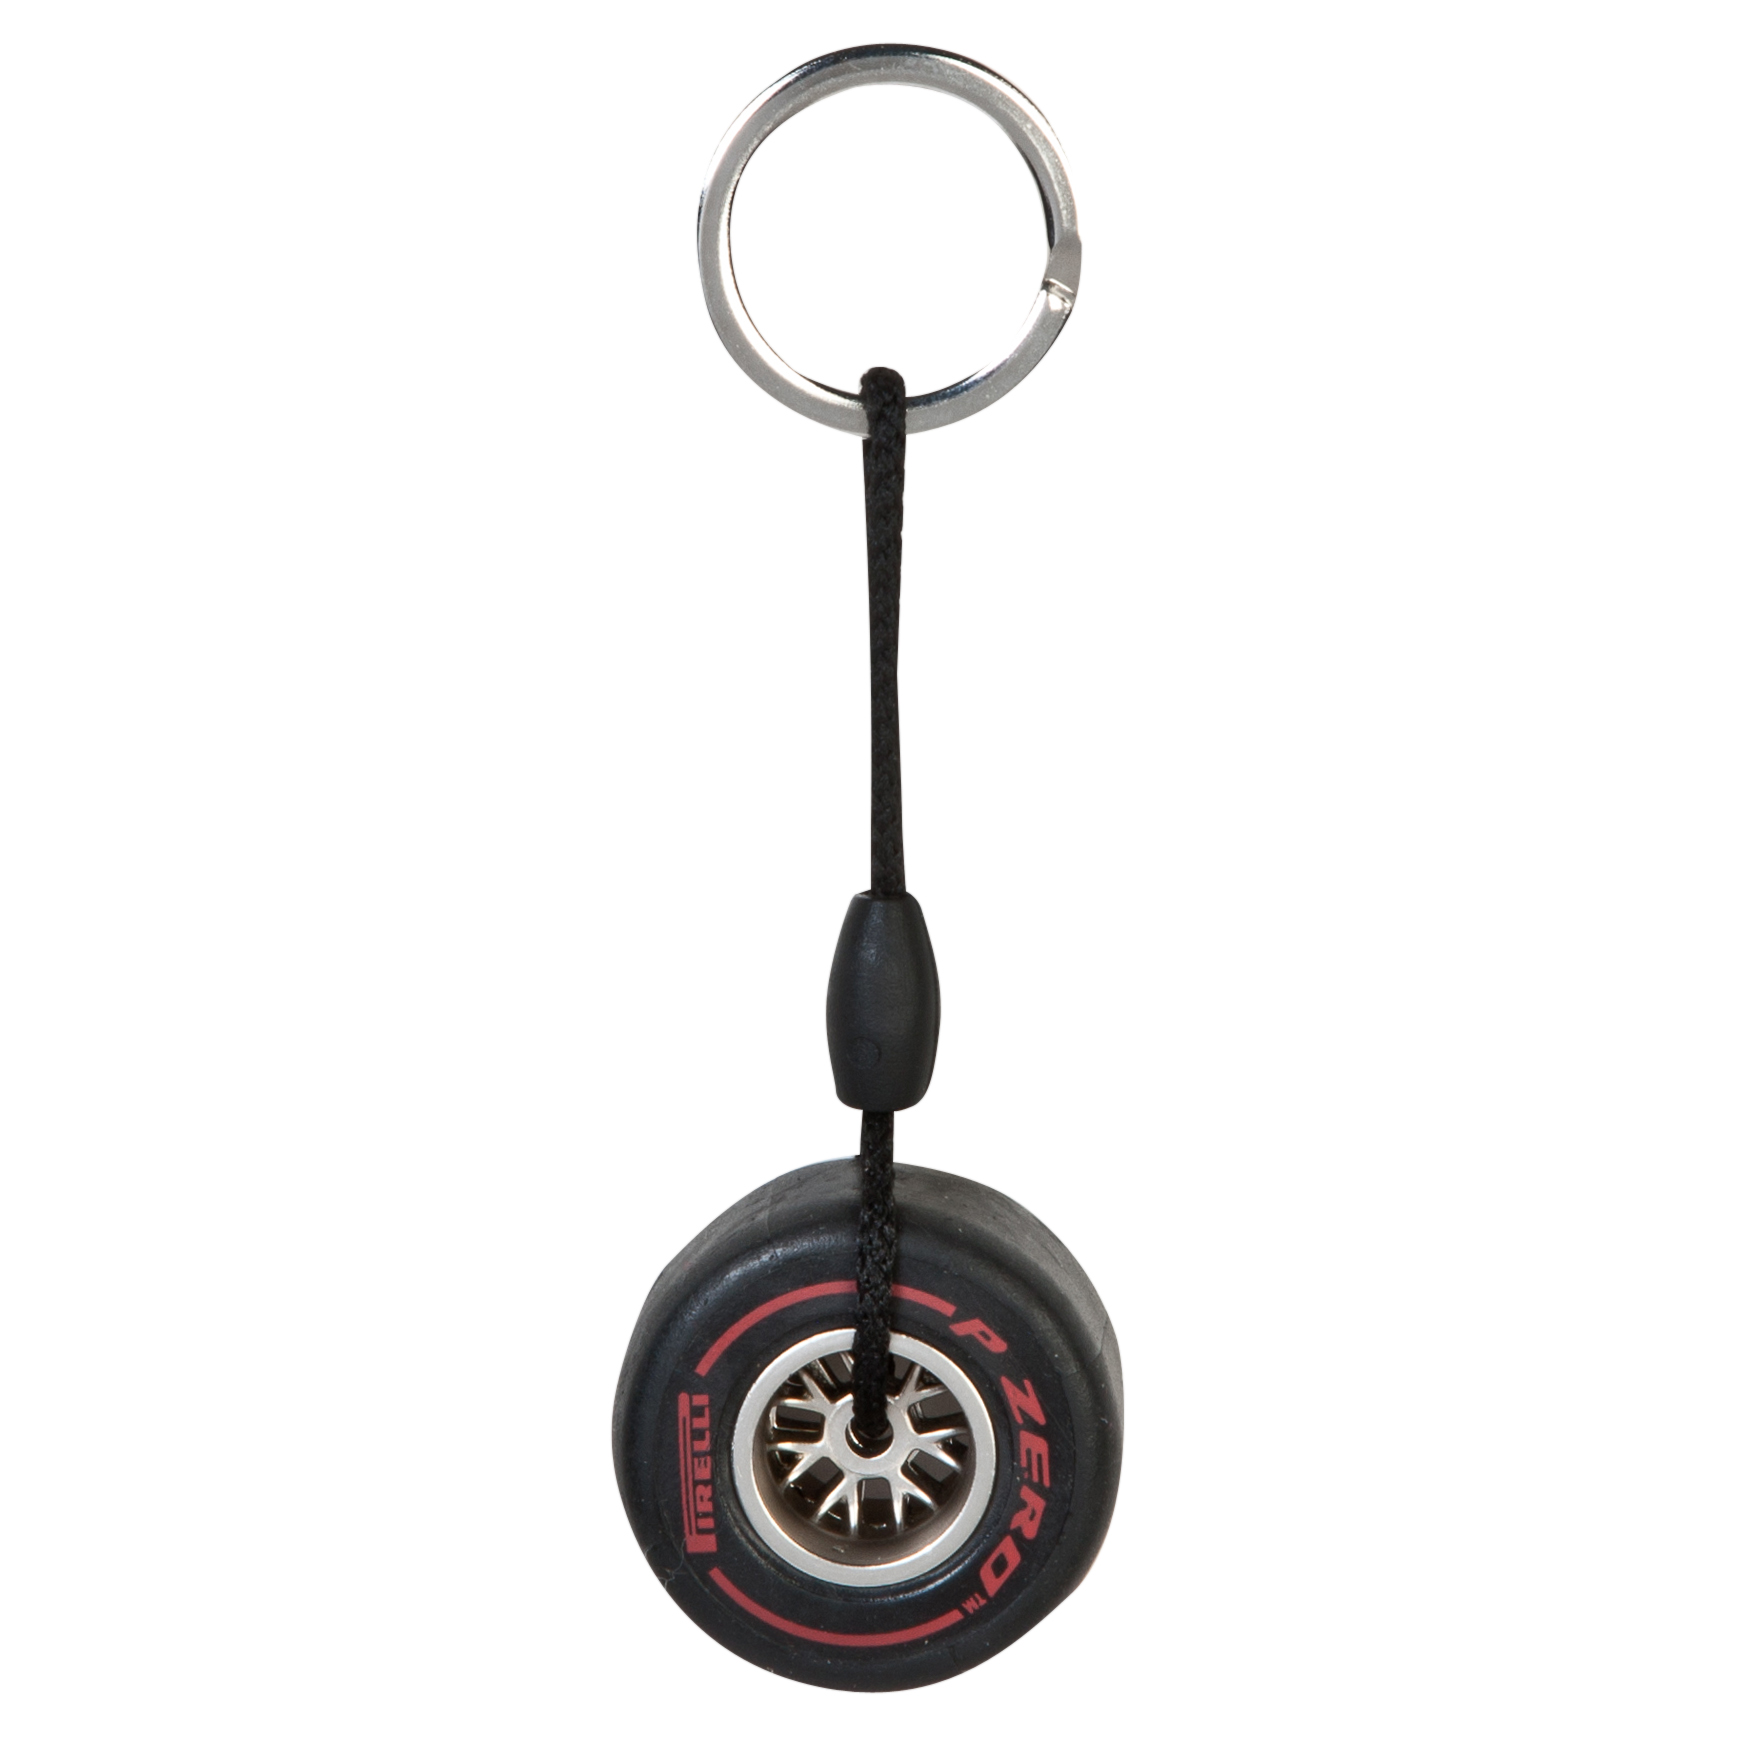 Pirelli Rim Tyre Key Ring - Super Soft Red